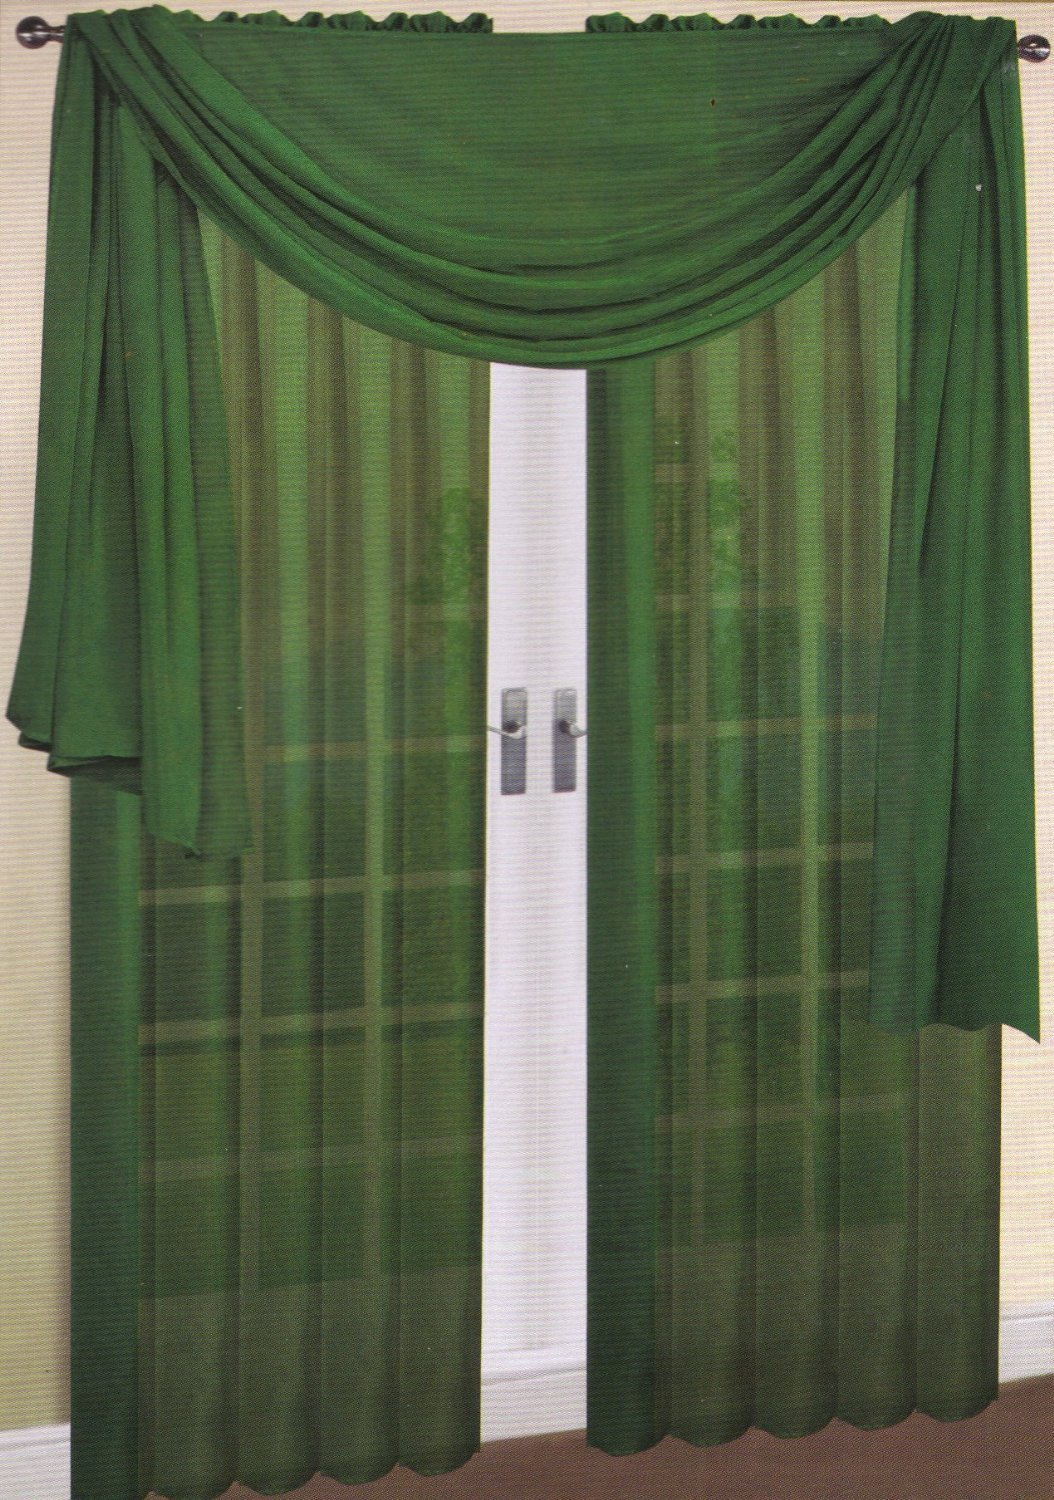 Green window curtain panels on sale ease bedding with style for Forest green curtains drapes